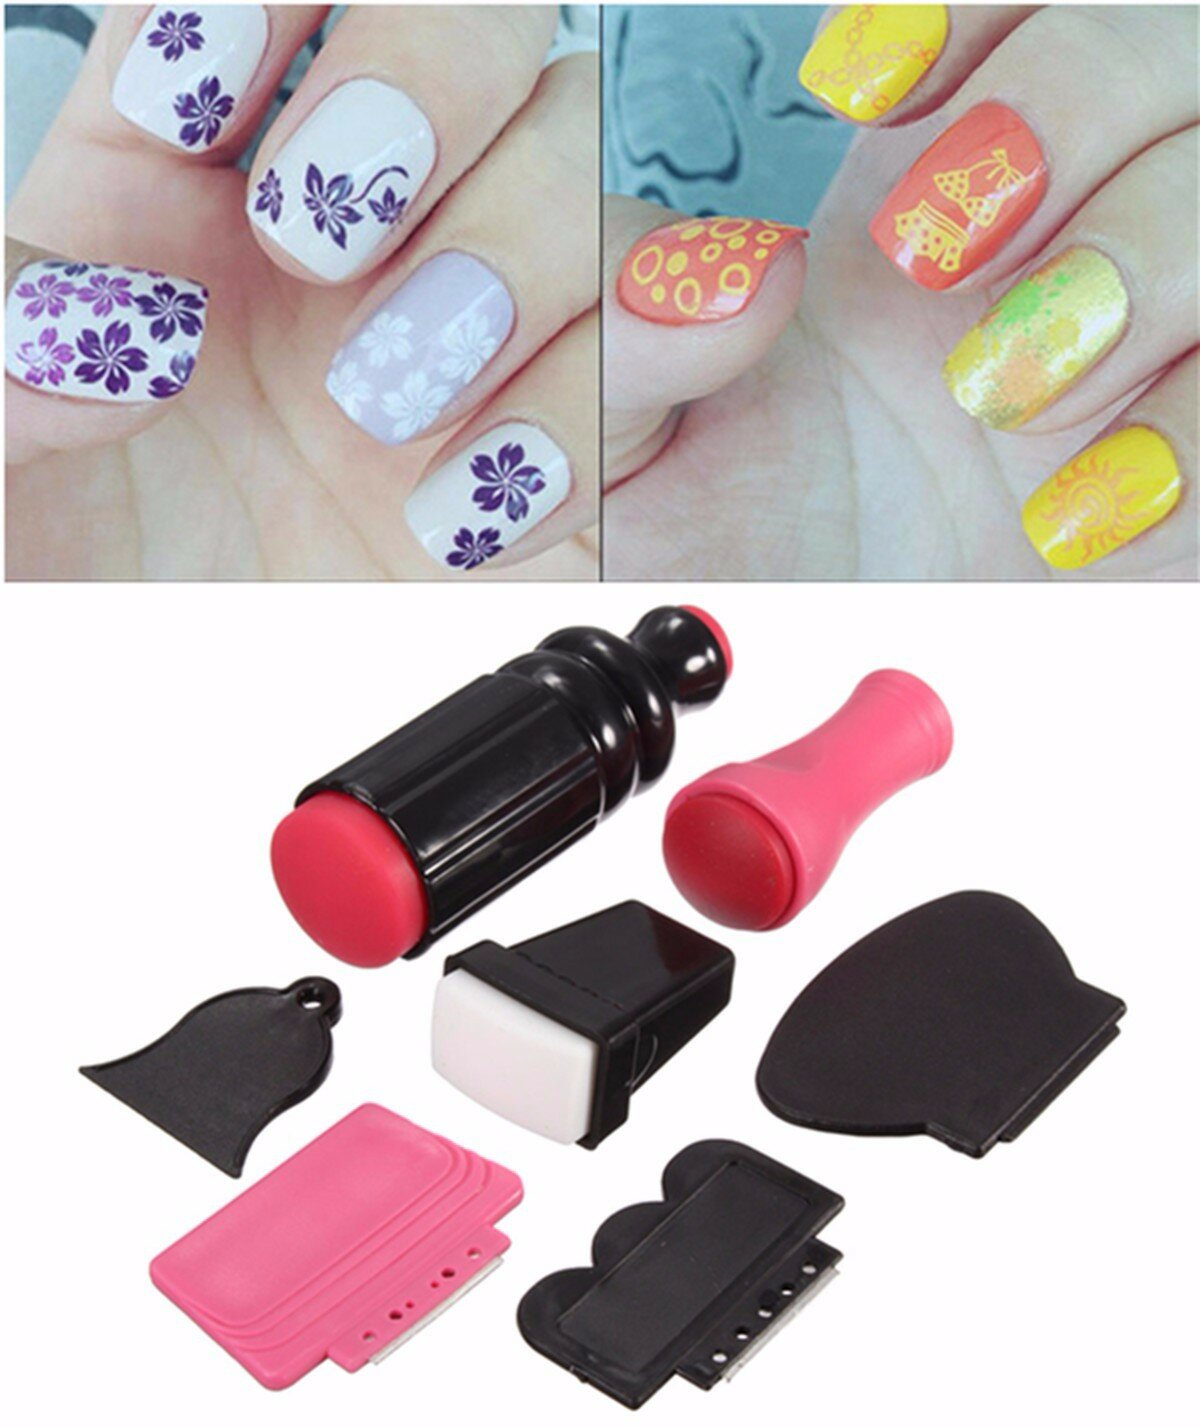 Nail Art Templates Brand New Diy Nail Art Stamping Stamper With Cap Scraper Plate Transfer Manicure Tool Nails Art & Tools